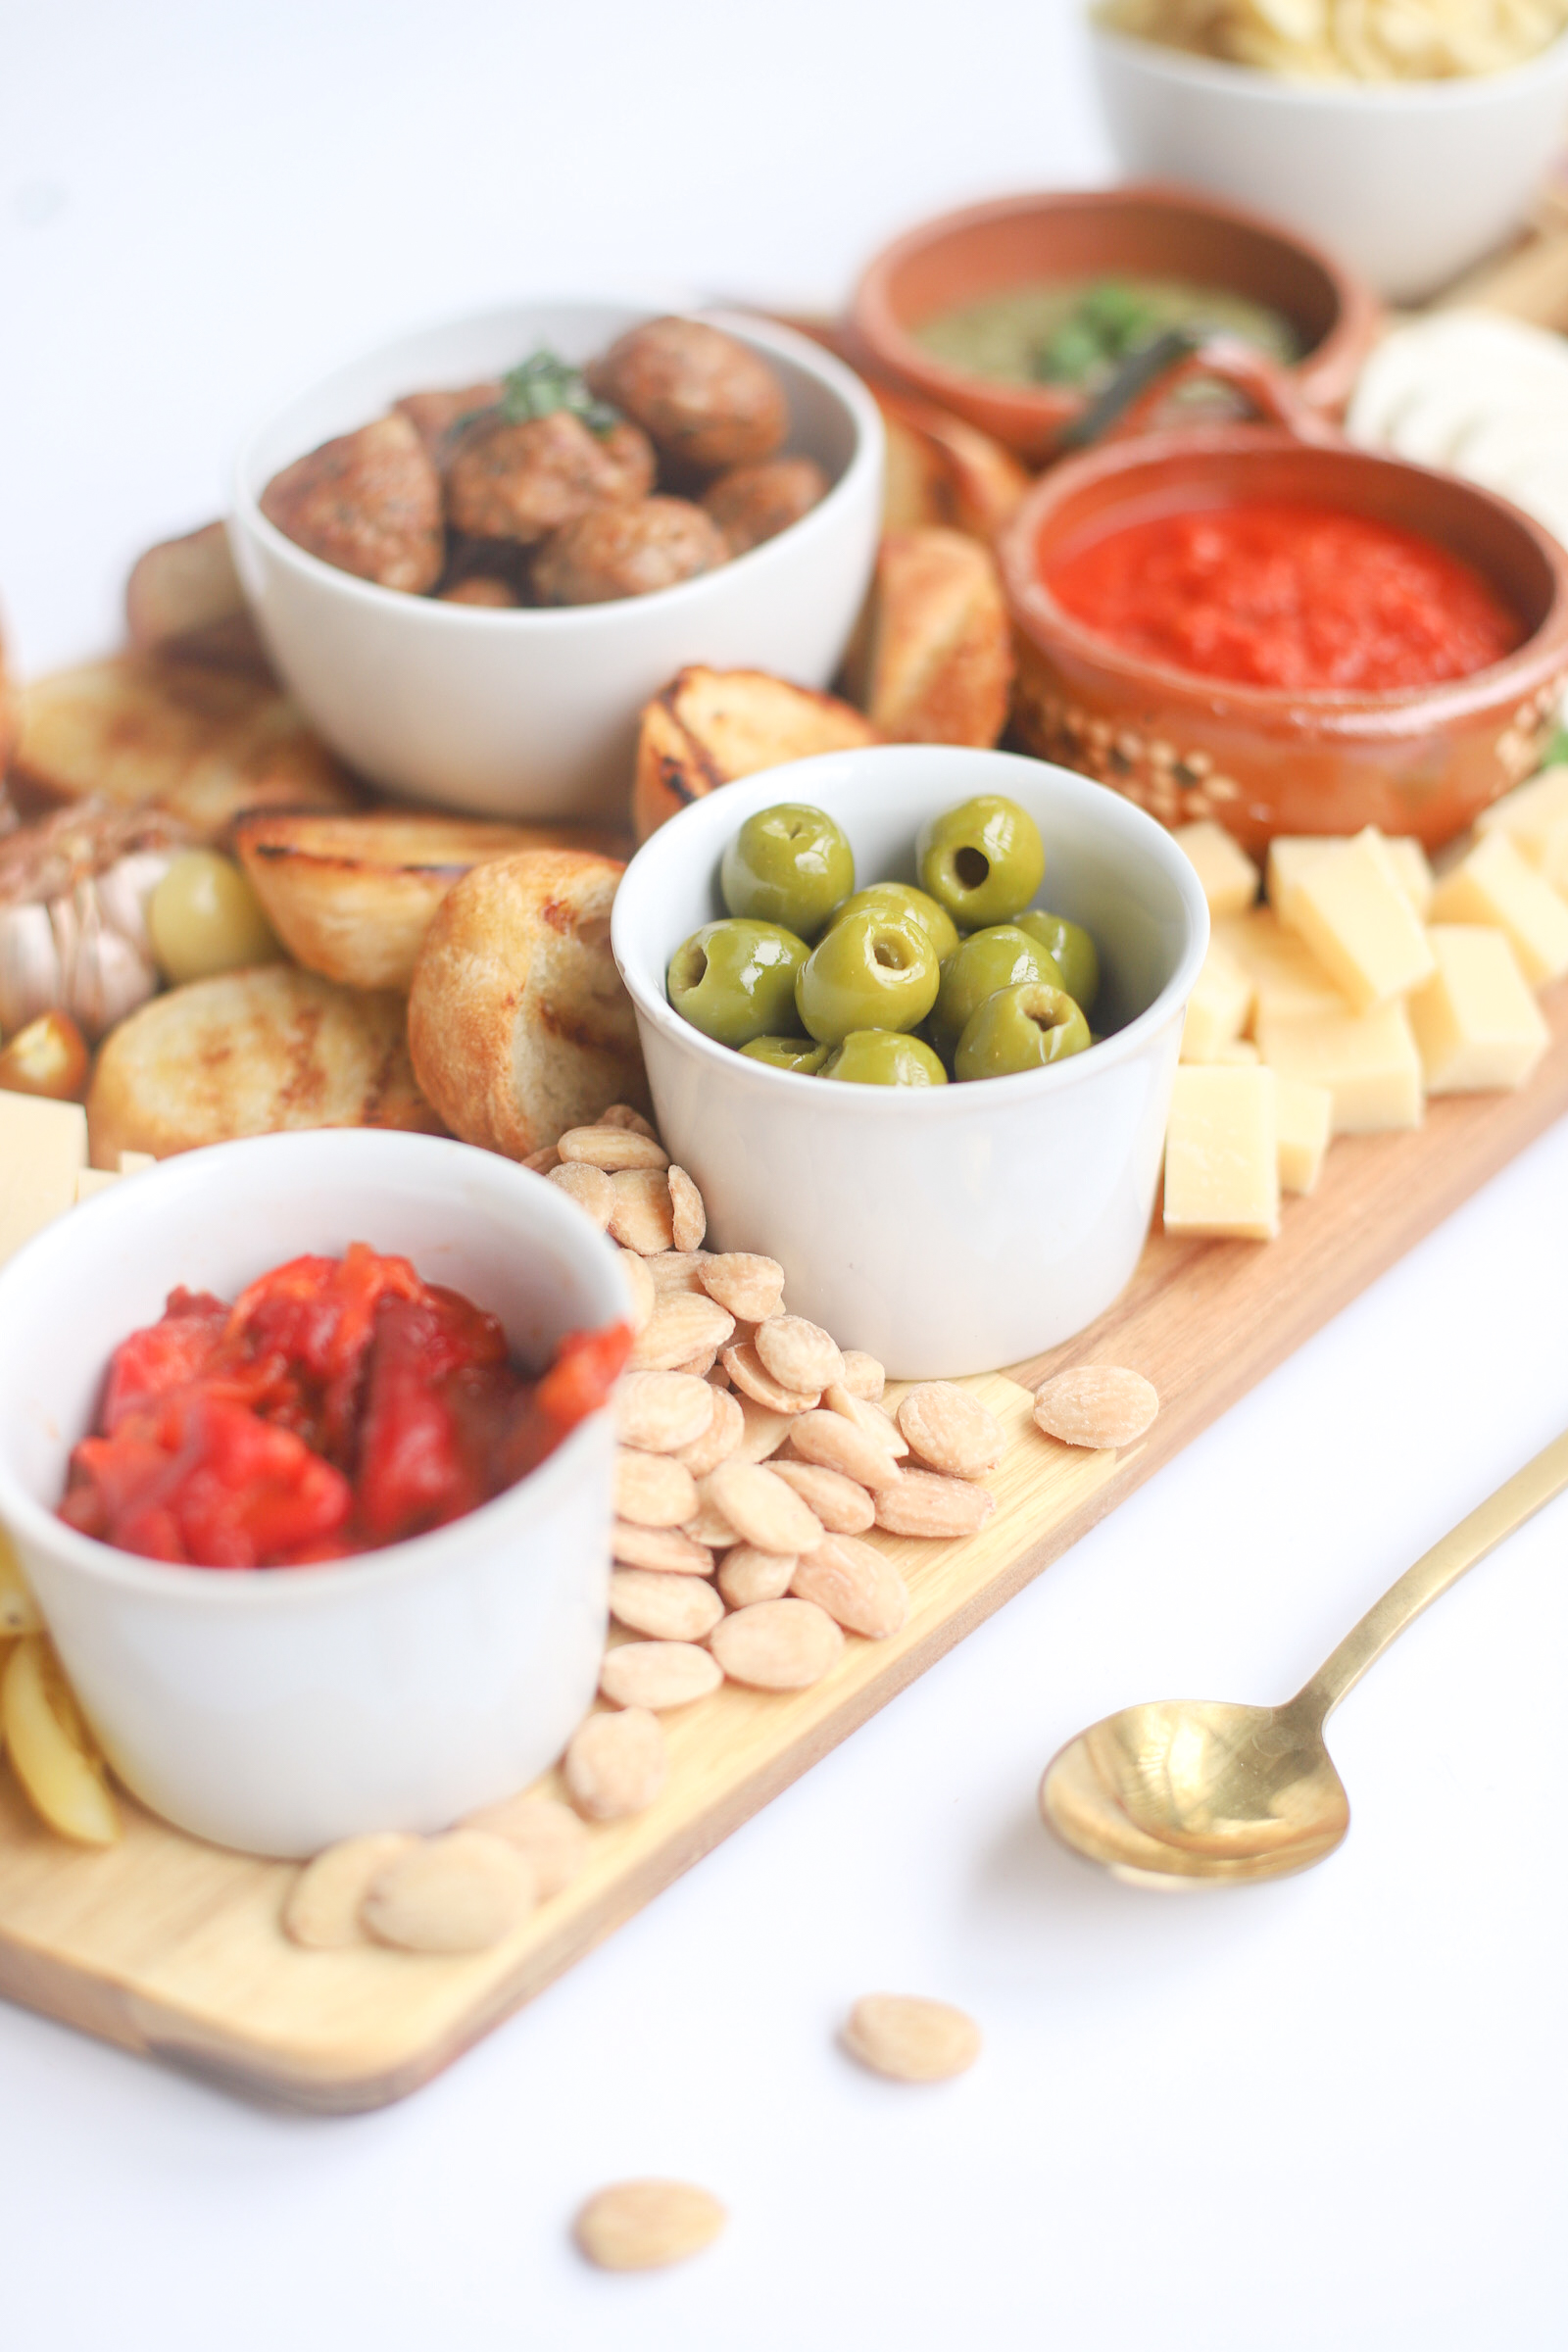 The Perfect Communal Snacking Meal for Summer